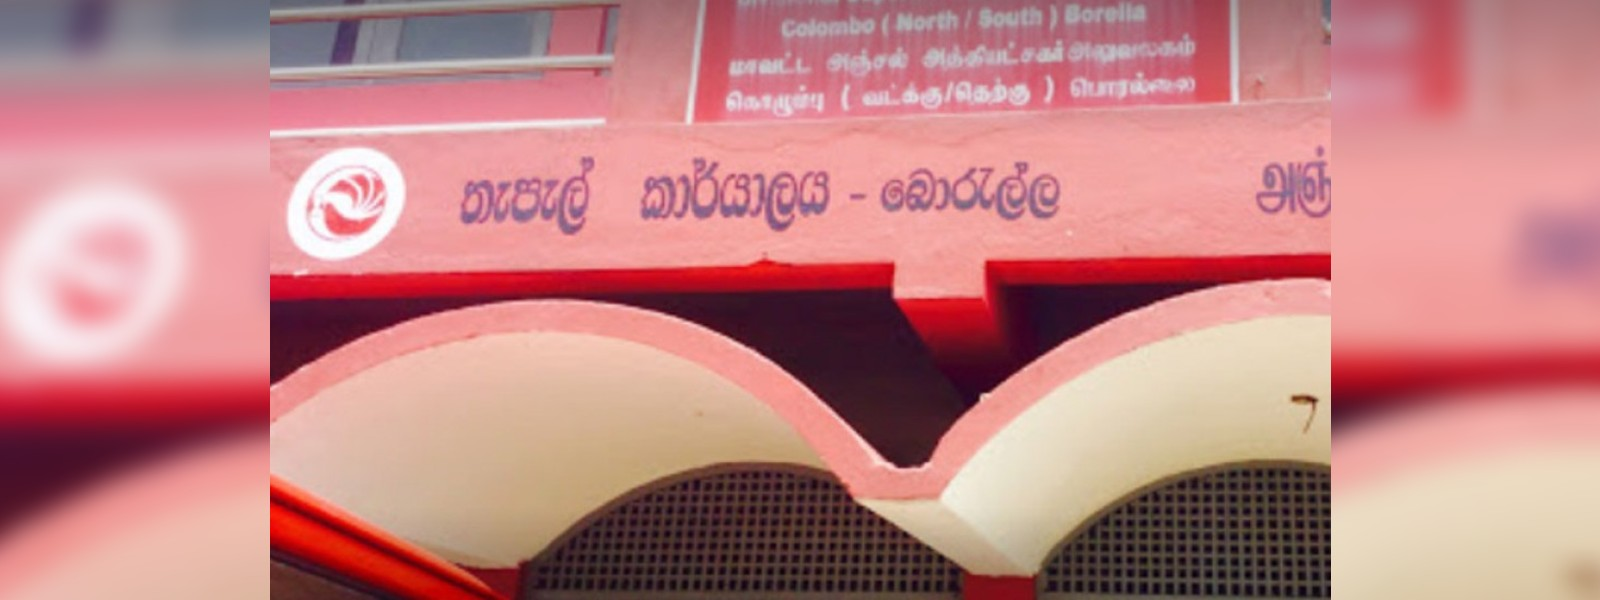 BORELLA POST OFFICE REOPENED